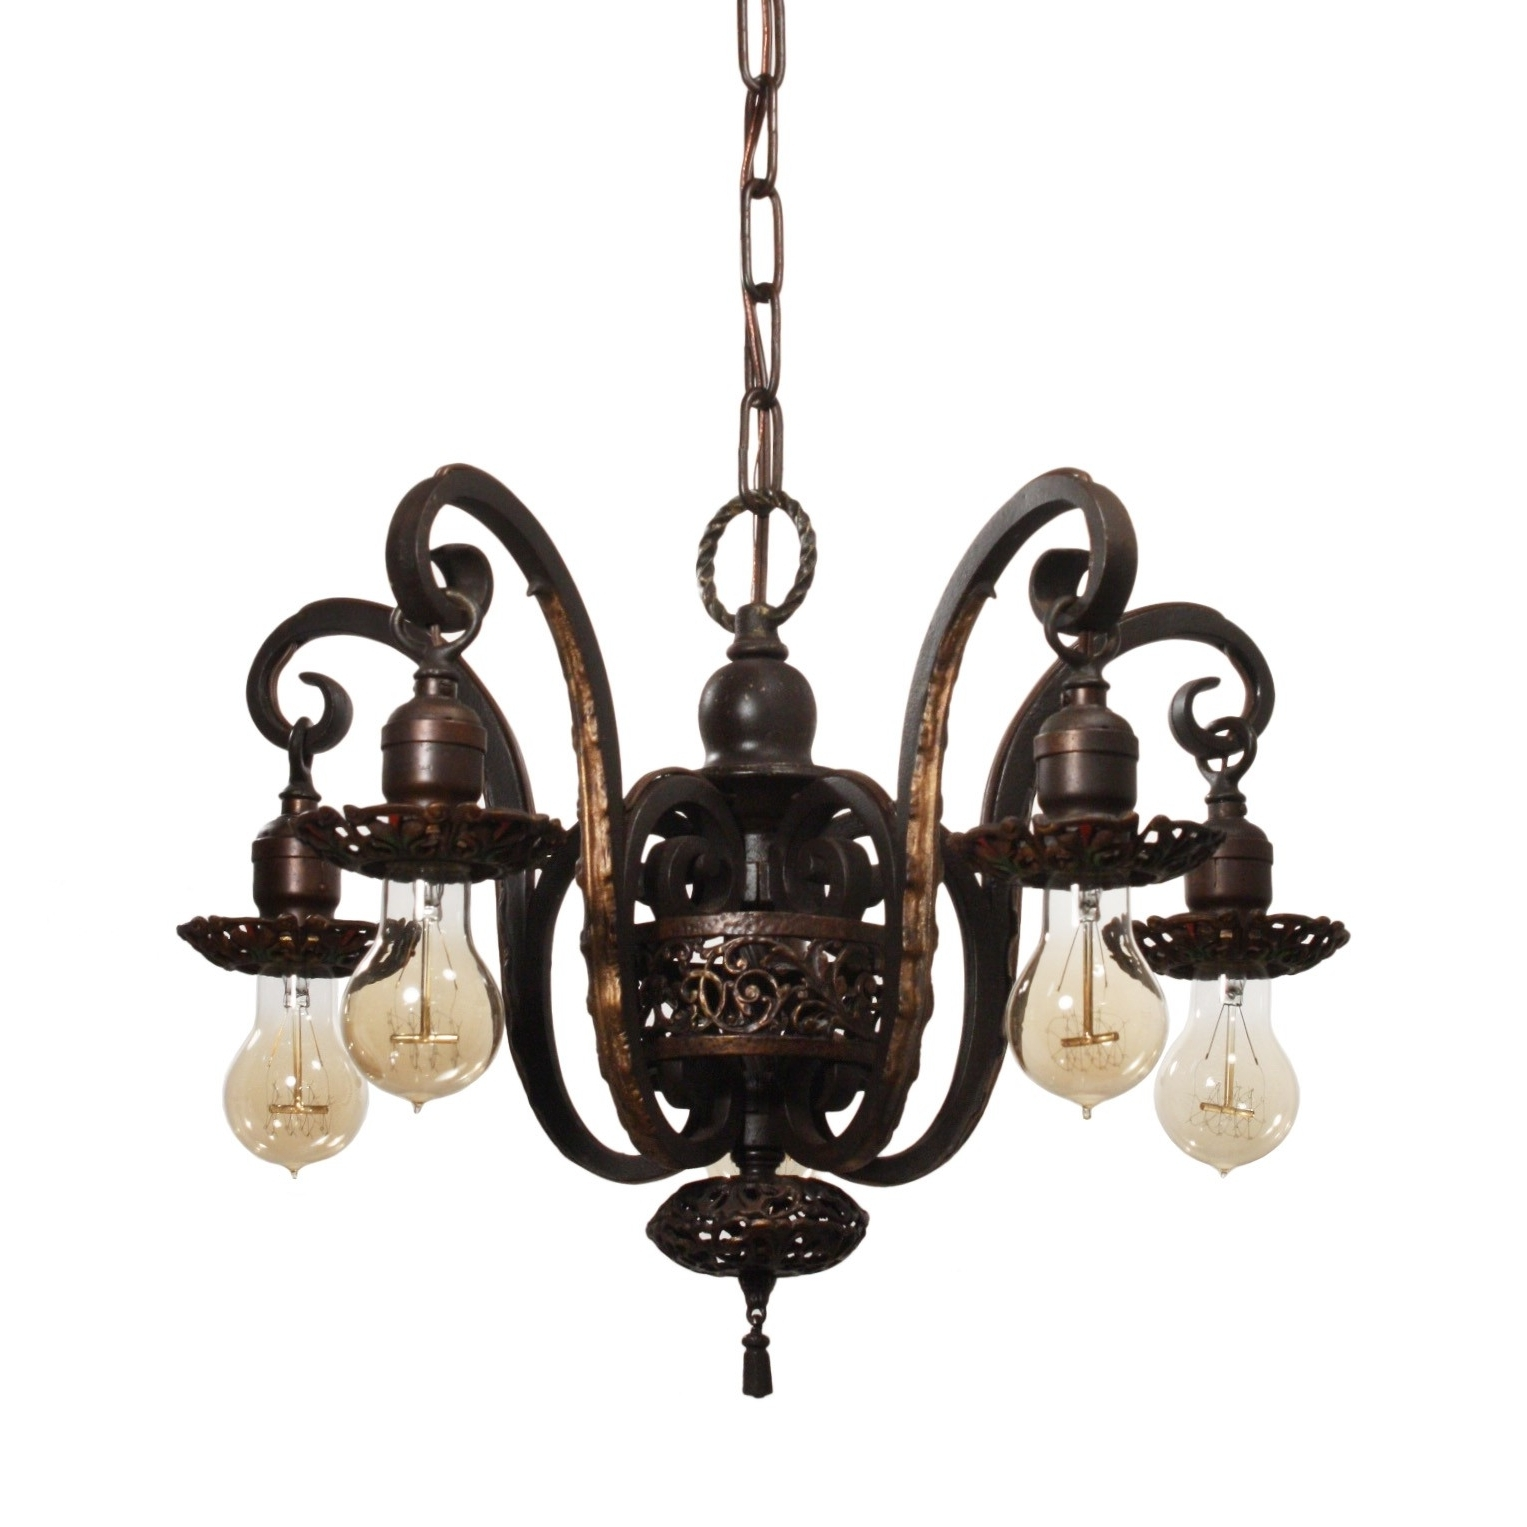 Most Recent Spanish Revival Chandelier In Cast Iron, Antique Lighting With Cast Iron Antique Chandelier (View 18 of 20)